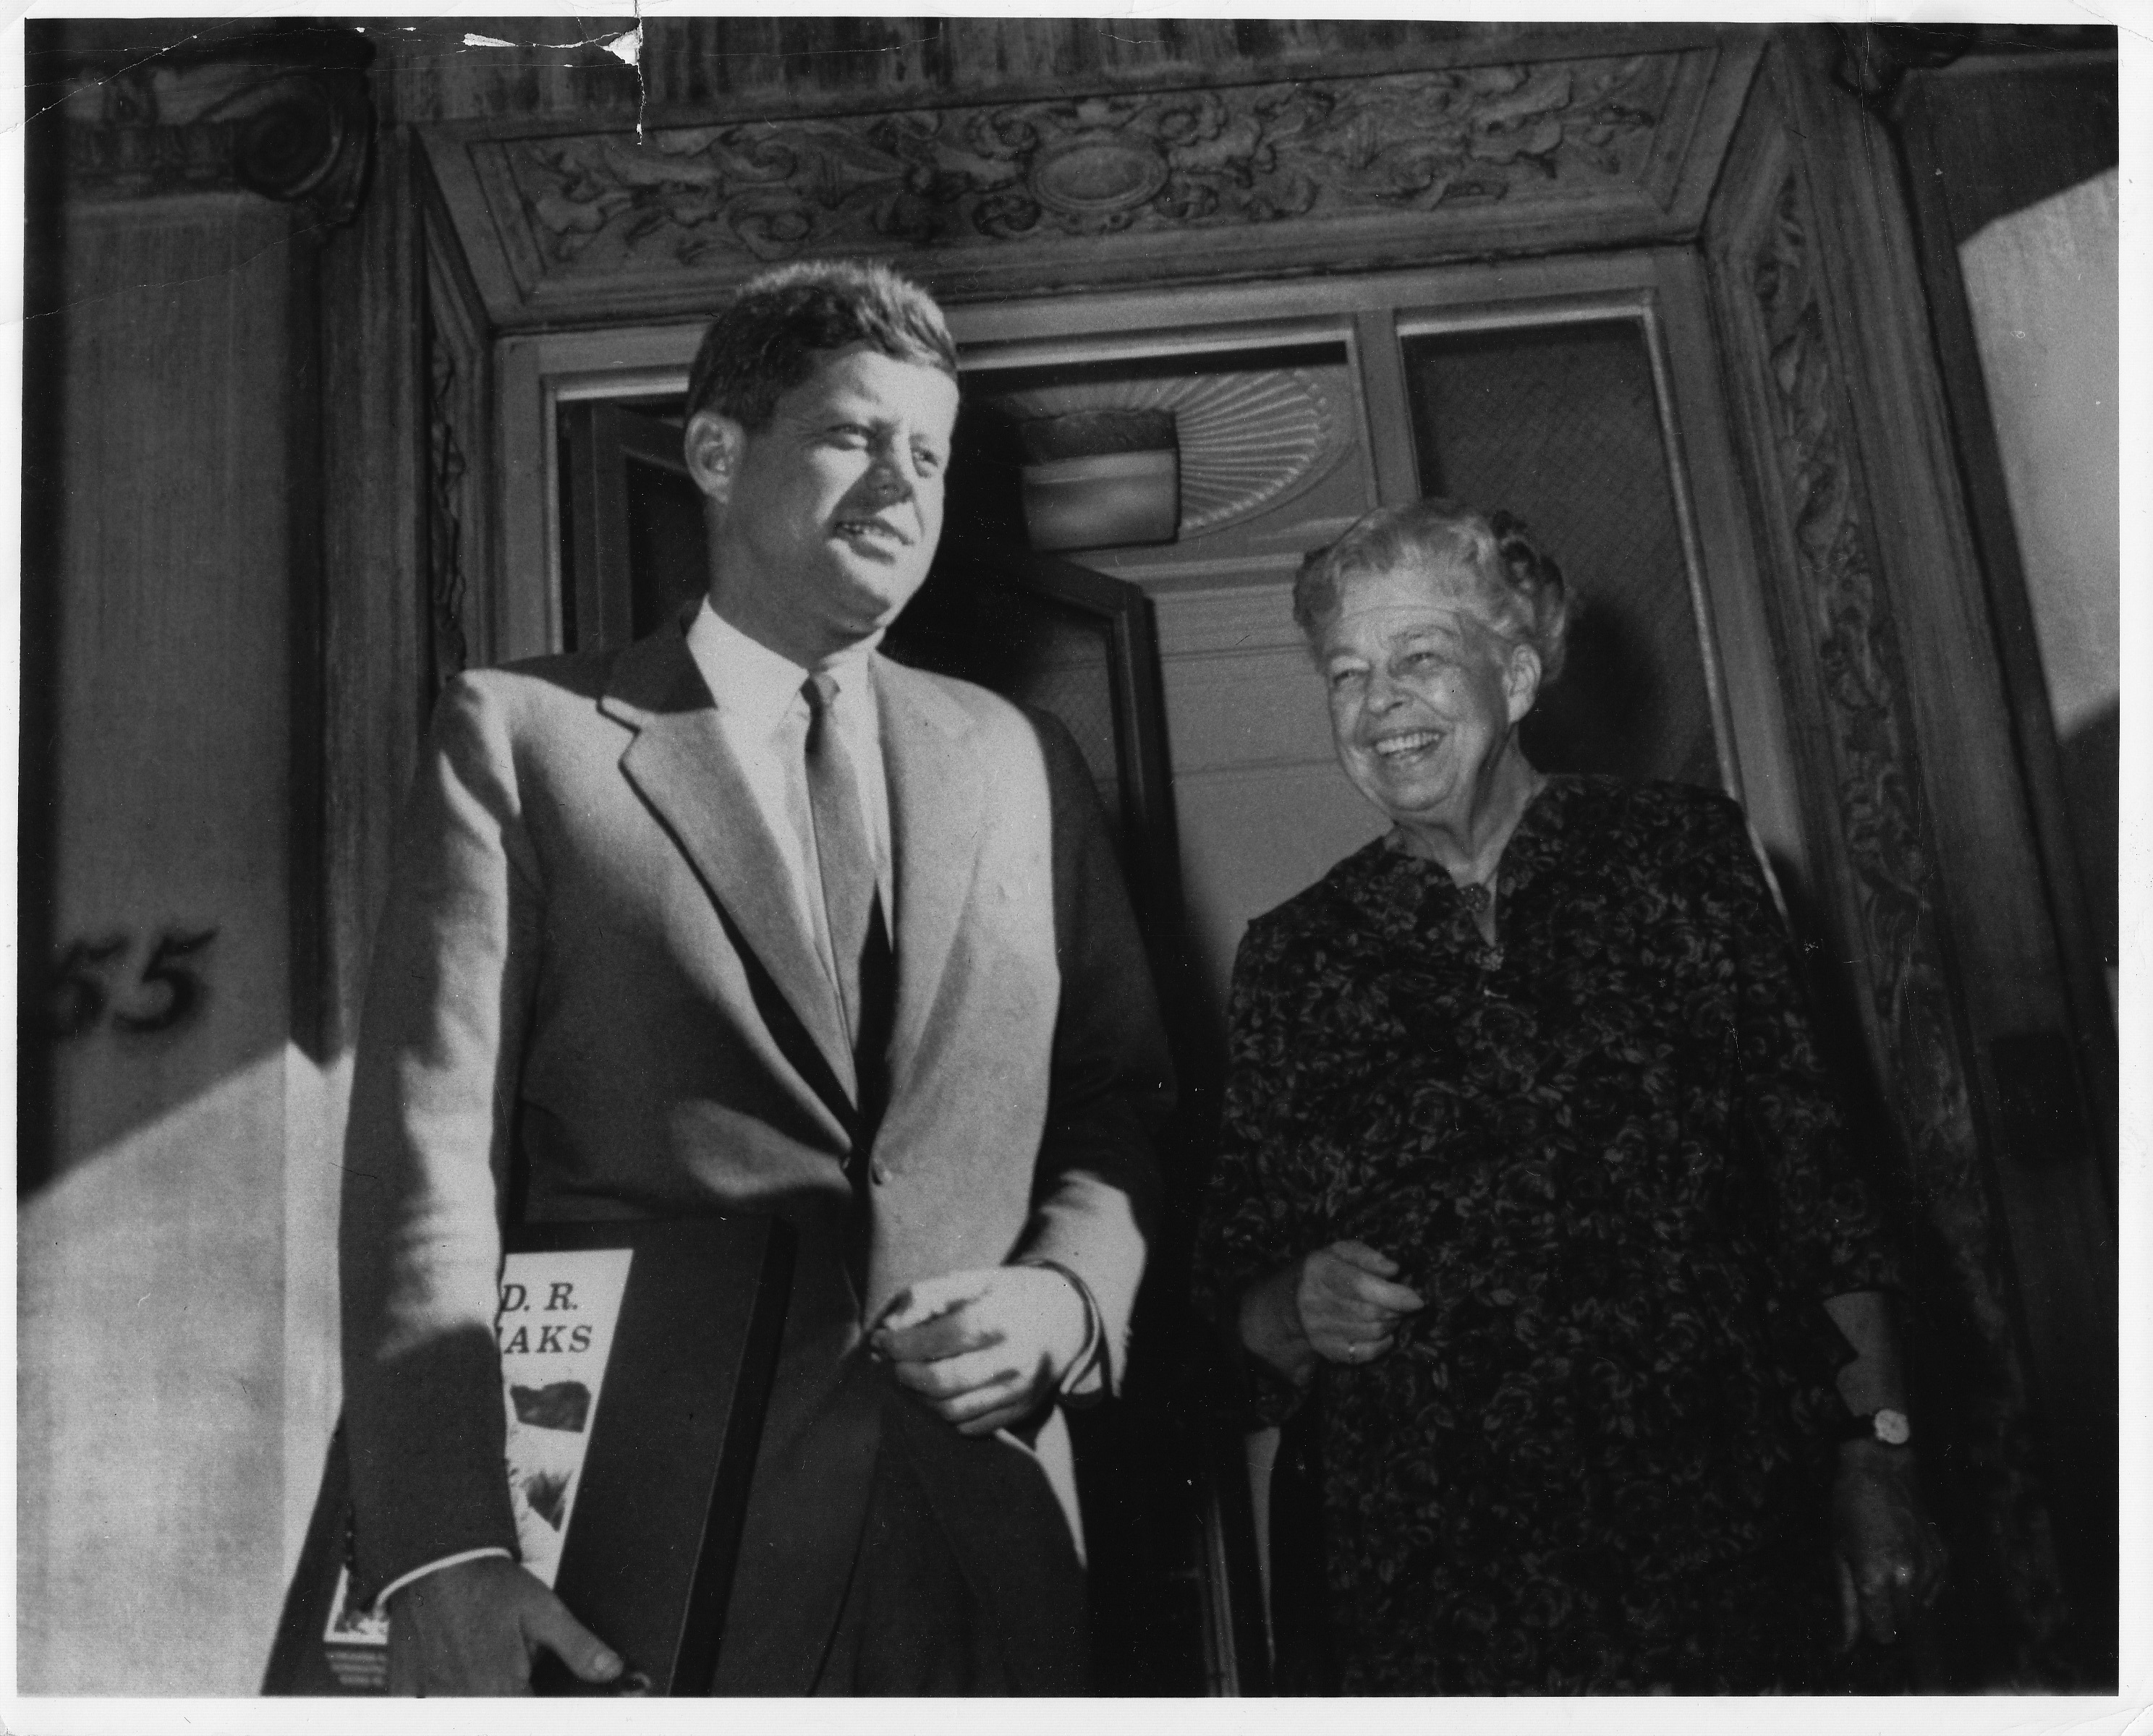 paul de angelis books book blog candidate john f kennedy making an appearance eleanor roosevelt in new york during his 1960 campaign for president united states information agency